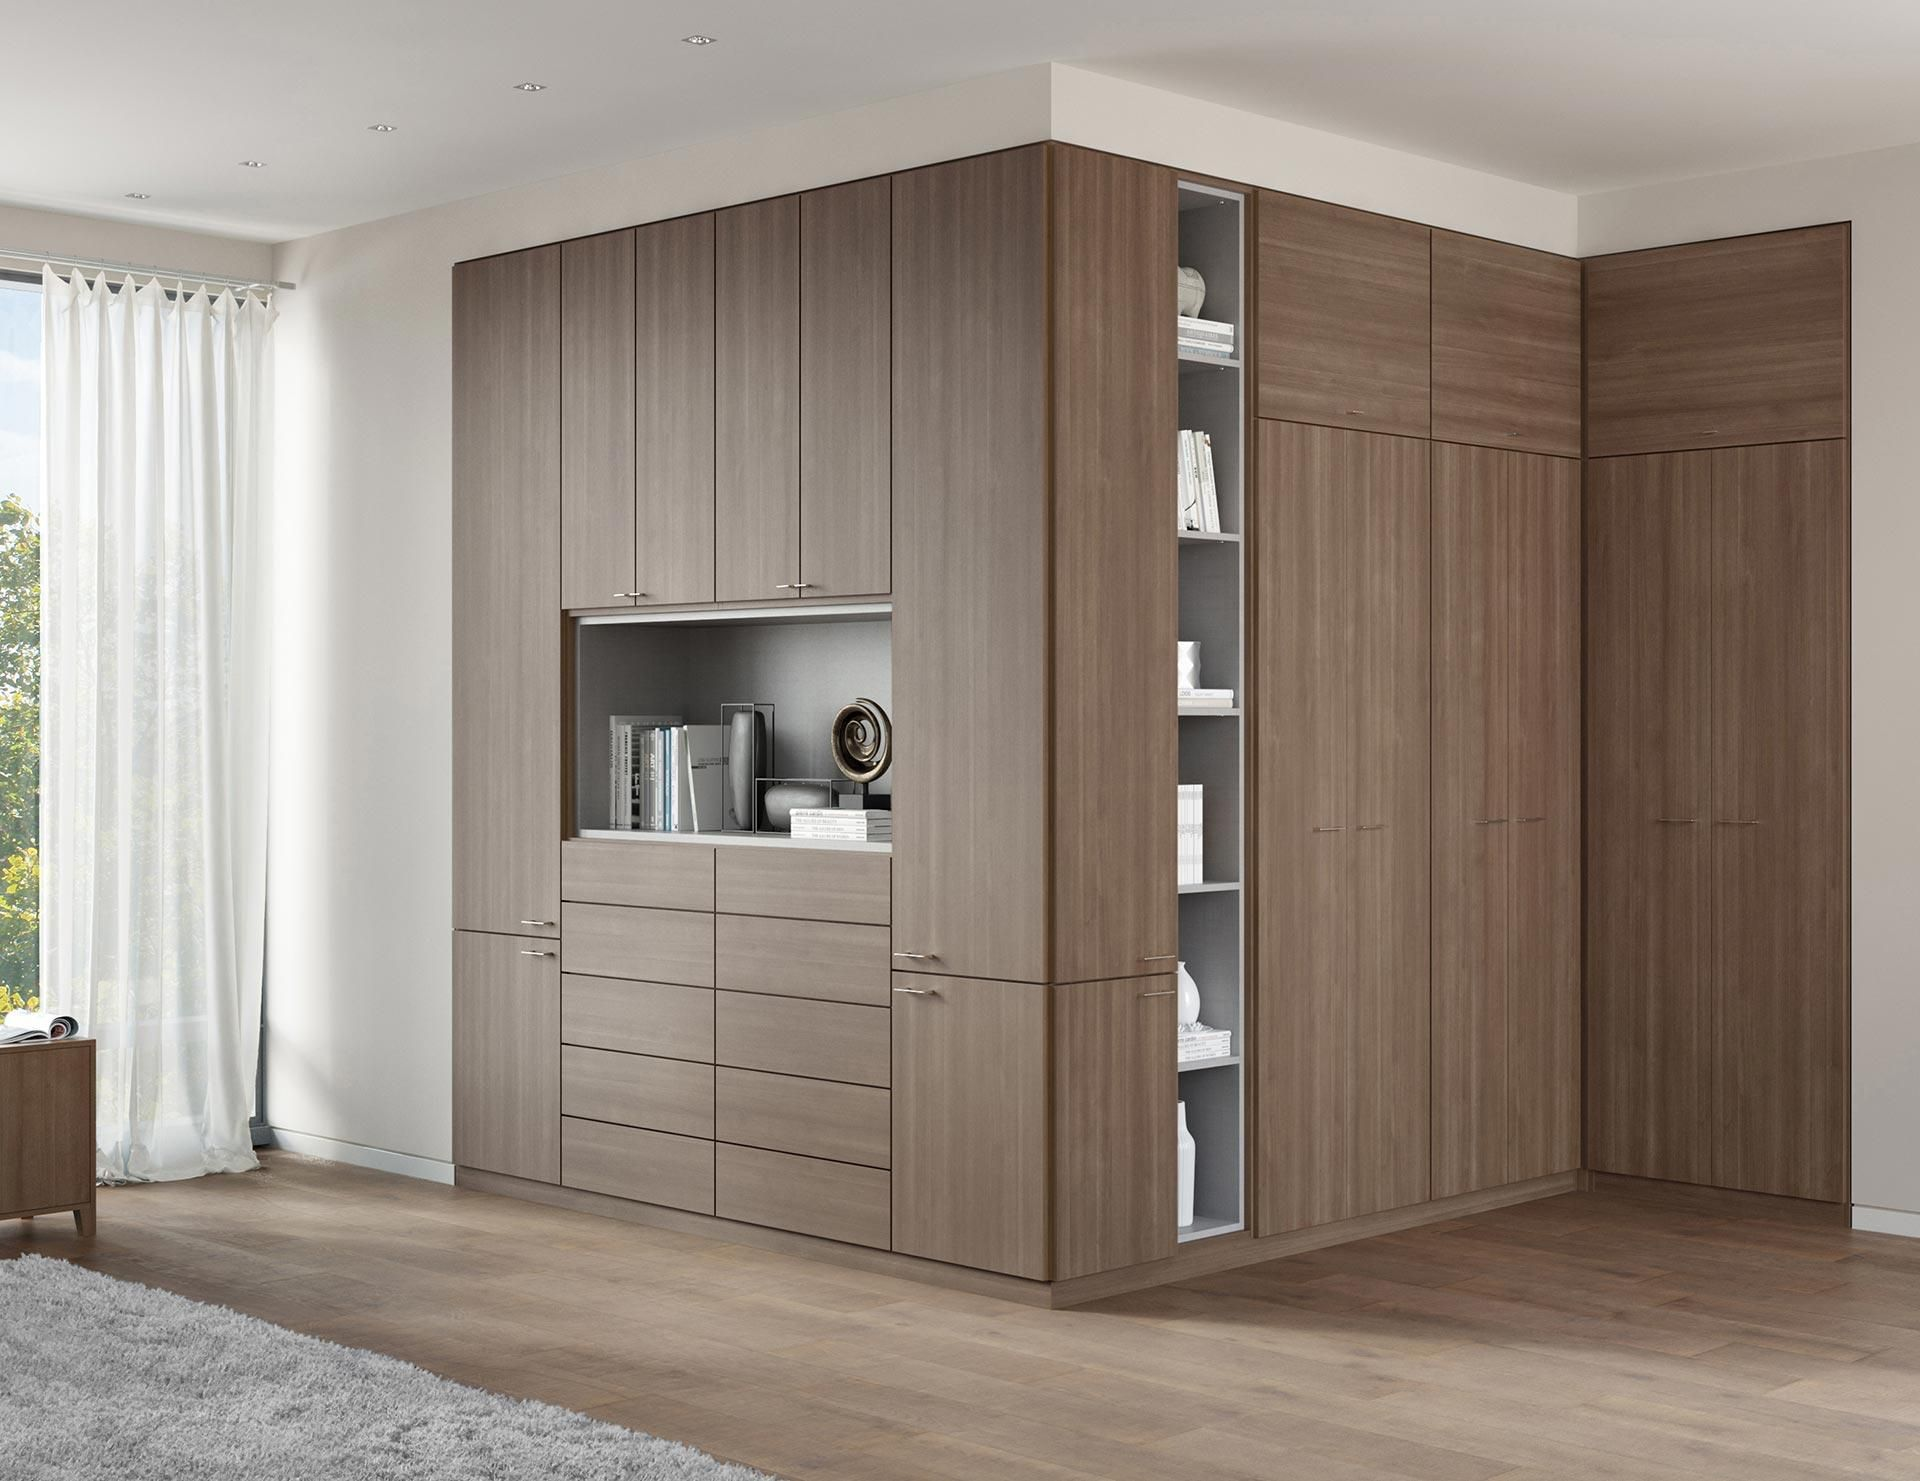 Wardrobe Closet For Increasing The